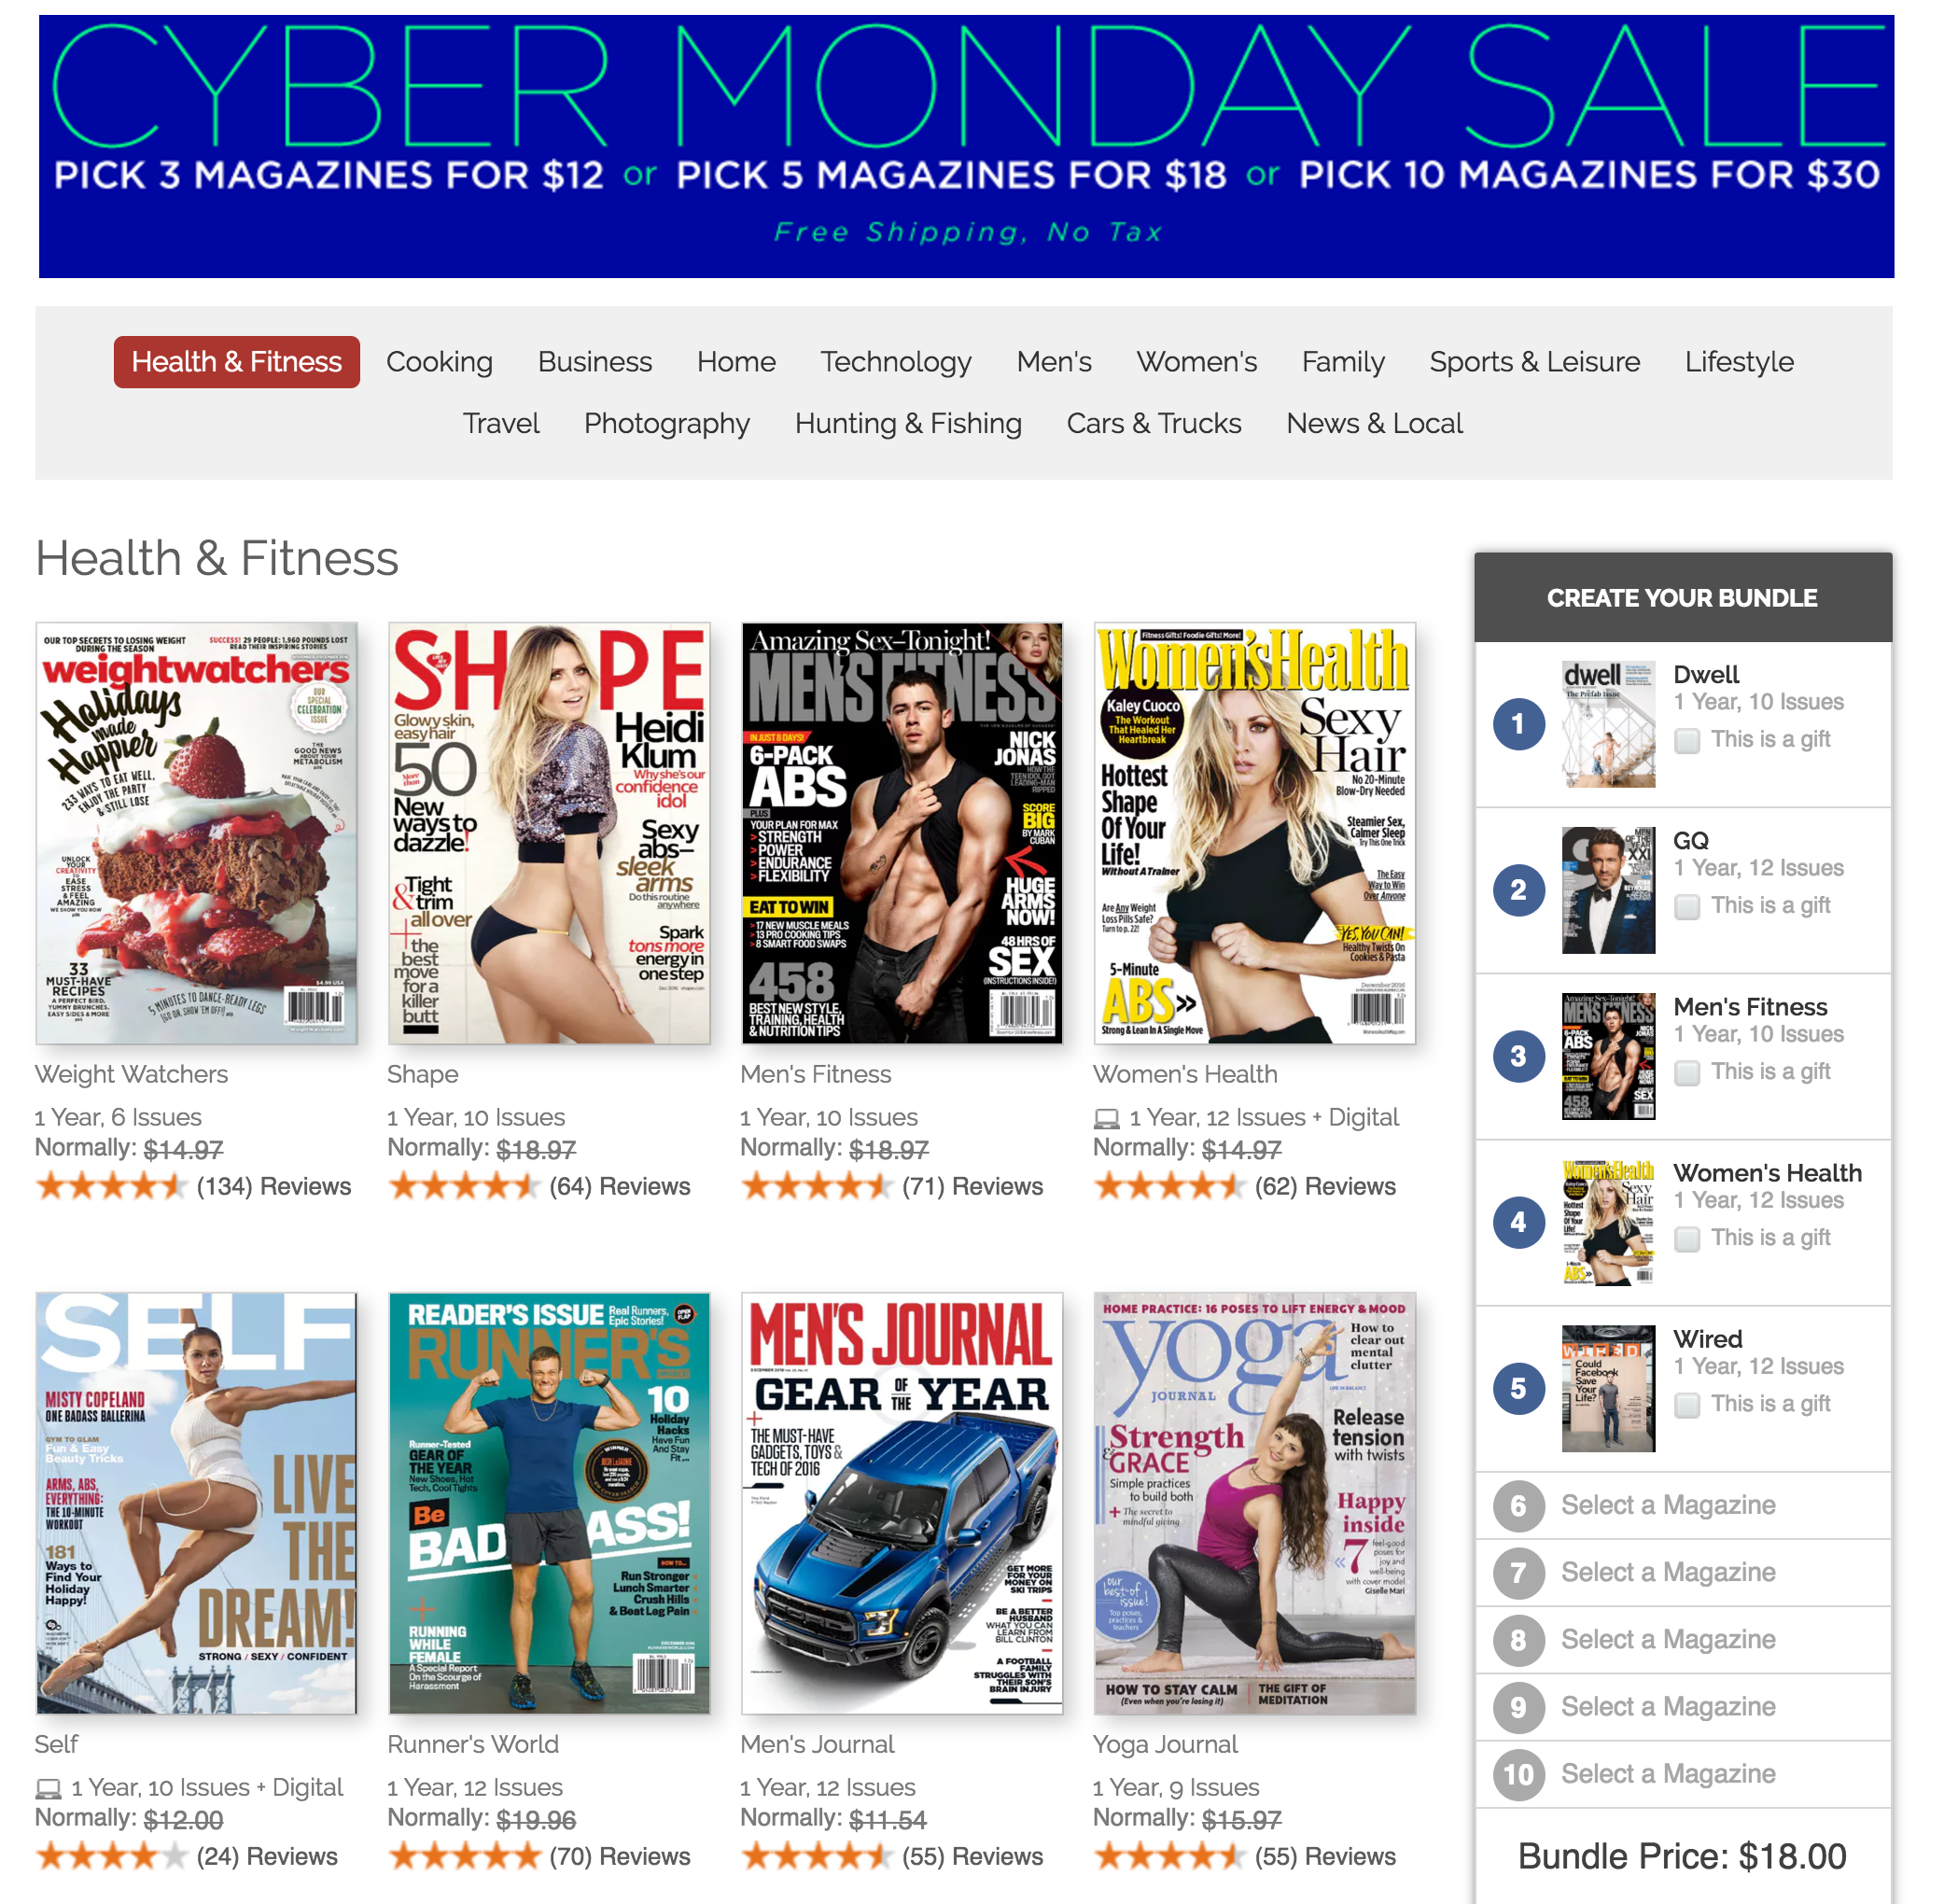 cyber-monday-magazine-sale-01-wired-sale-02